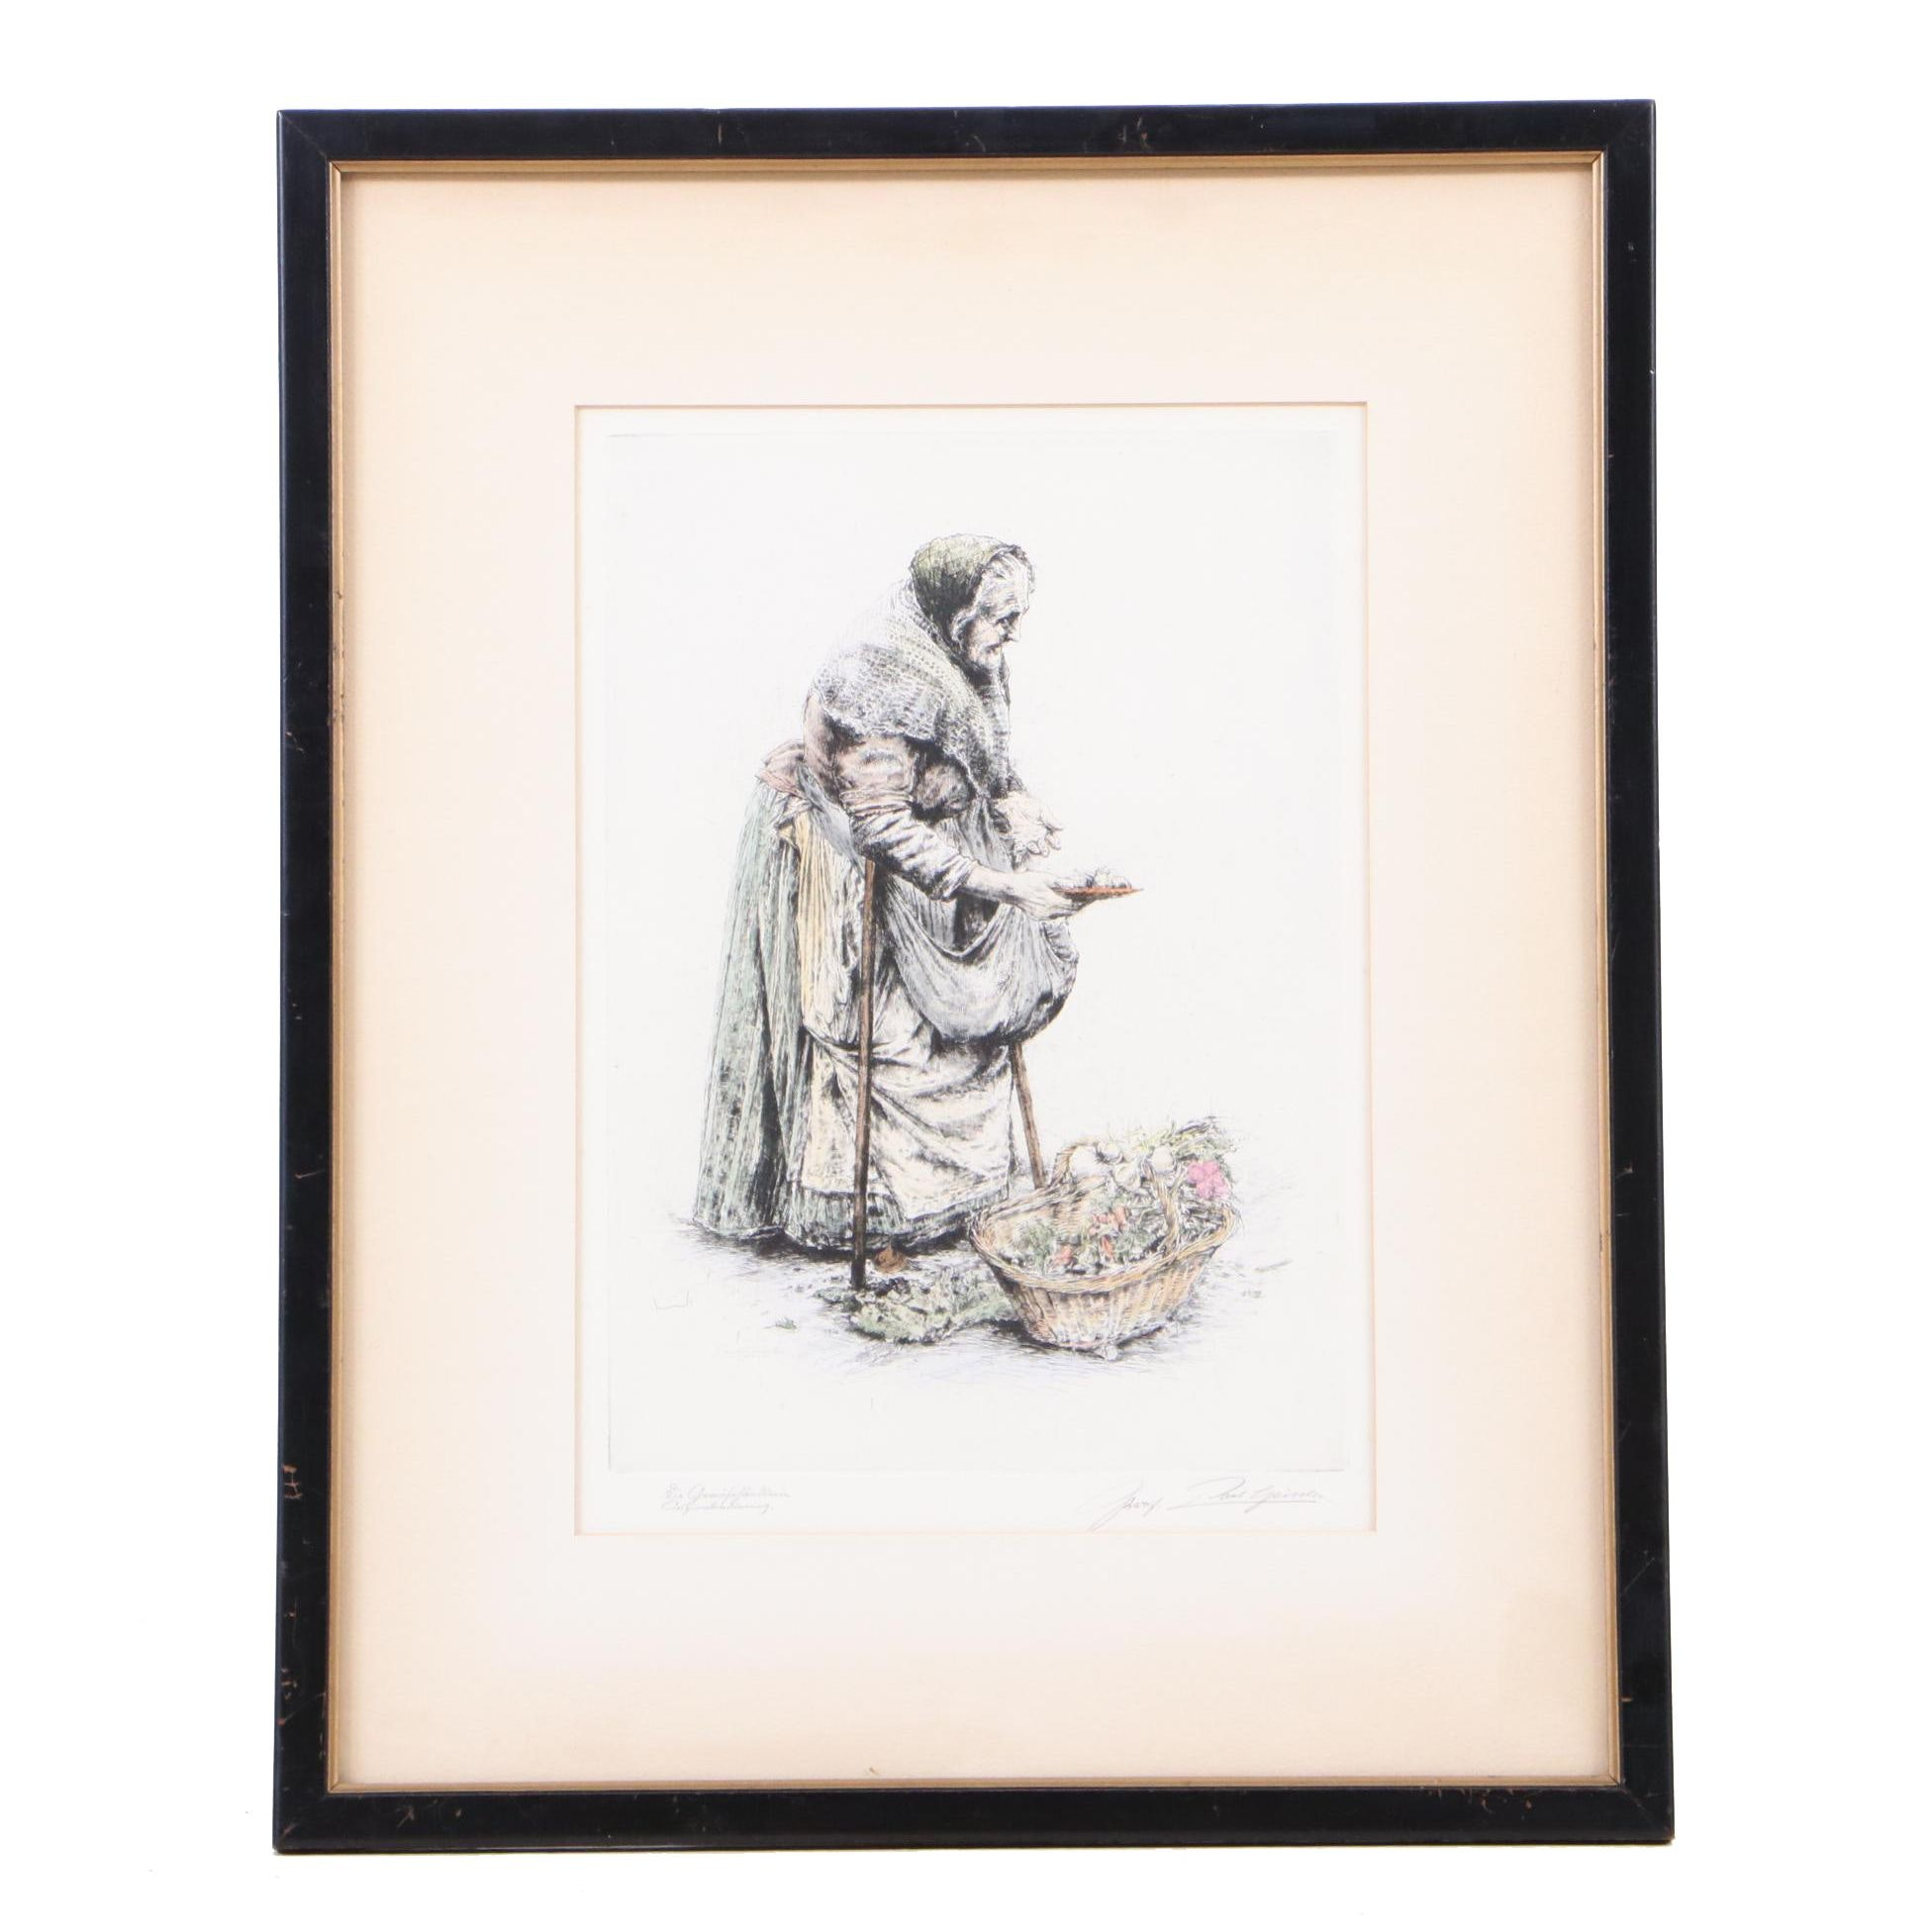 Hand-colored Etching of Peasant Woman with Vegetables